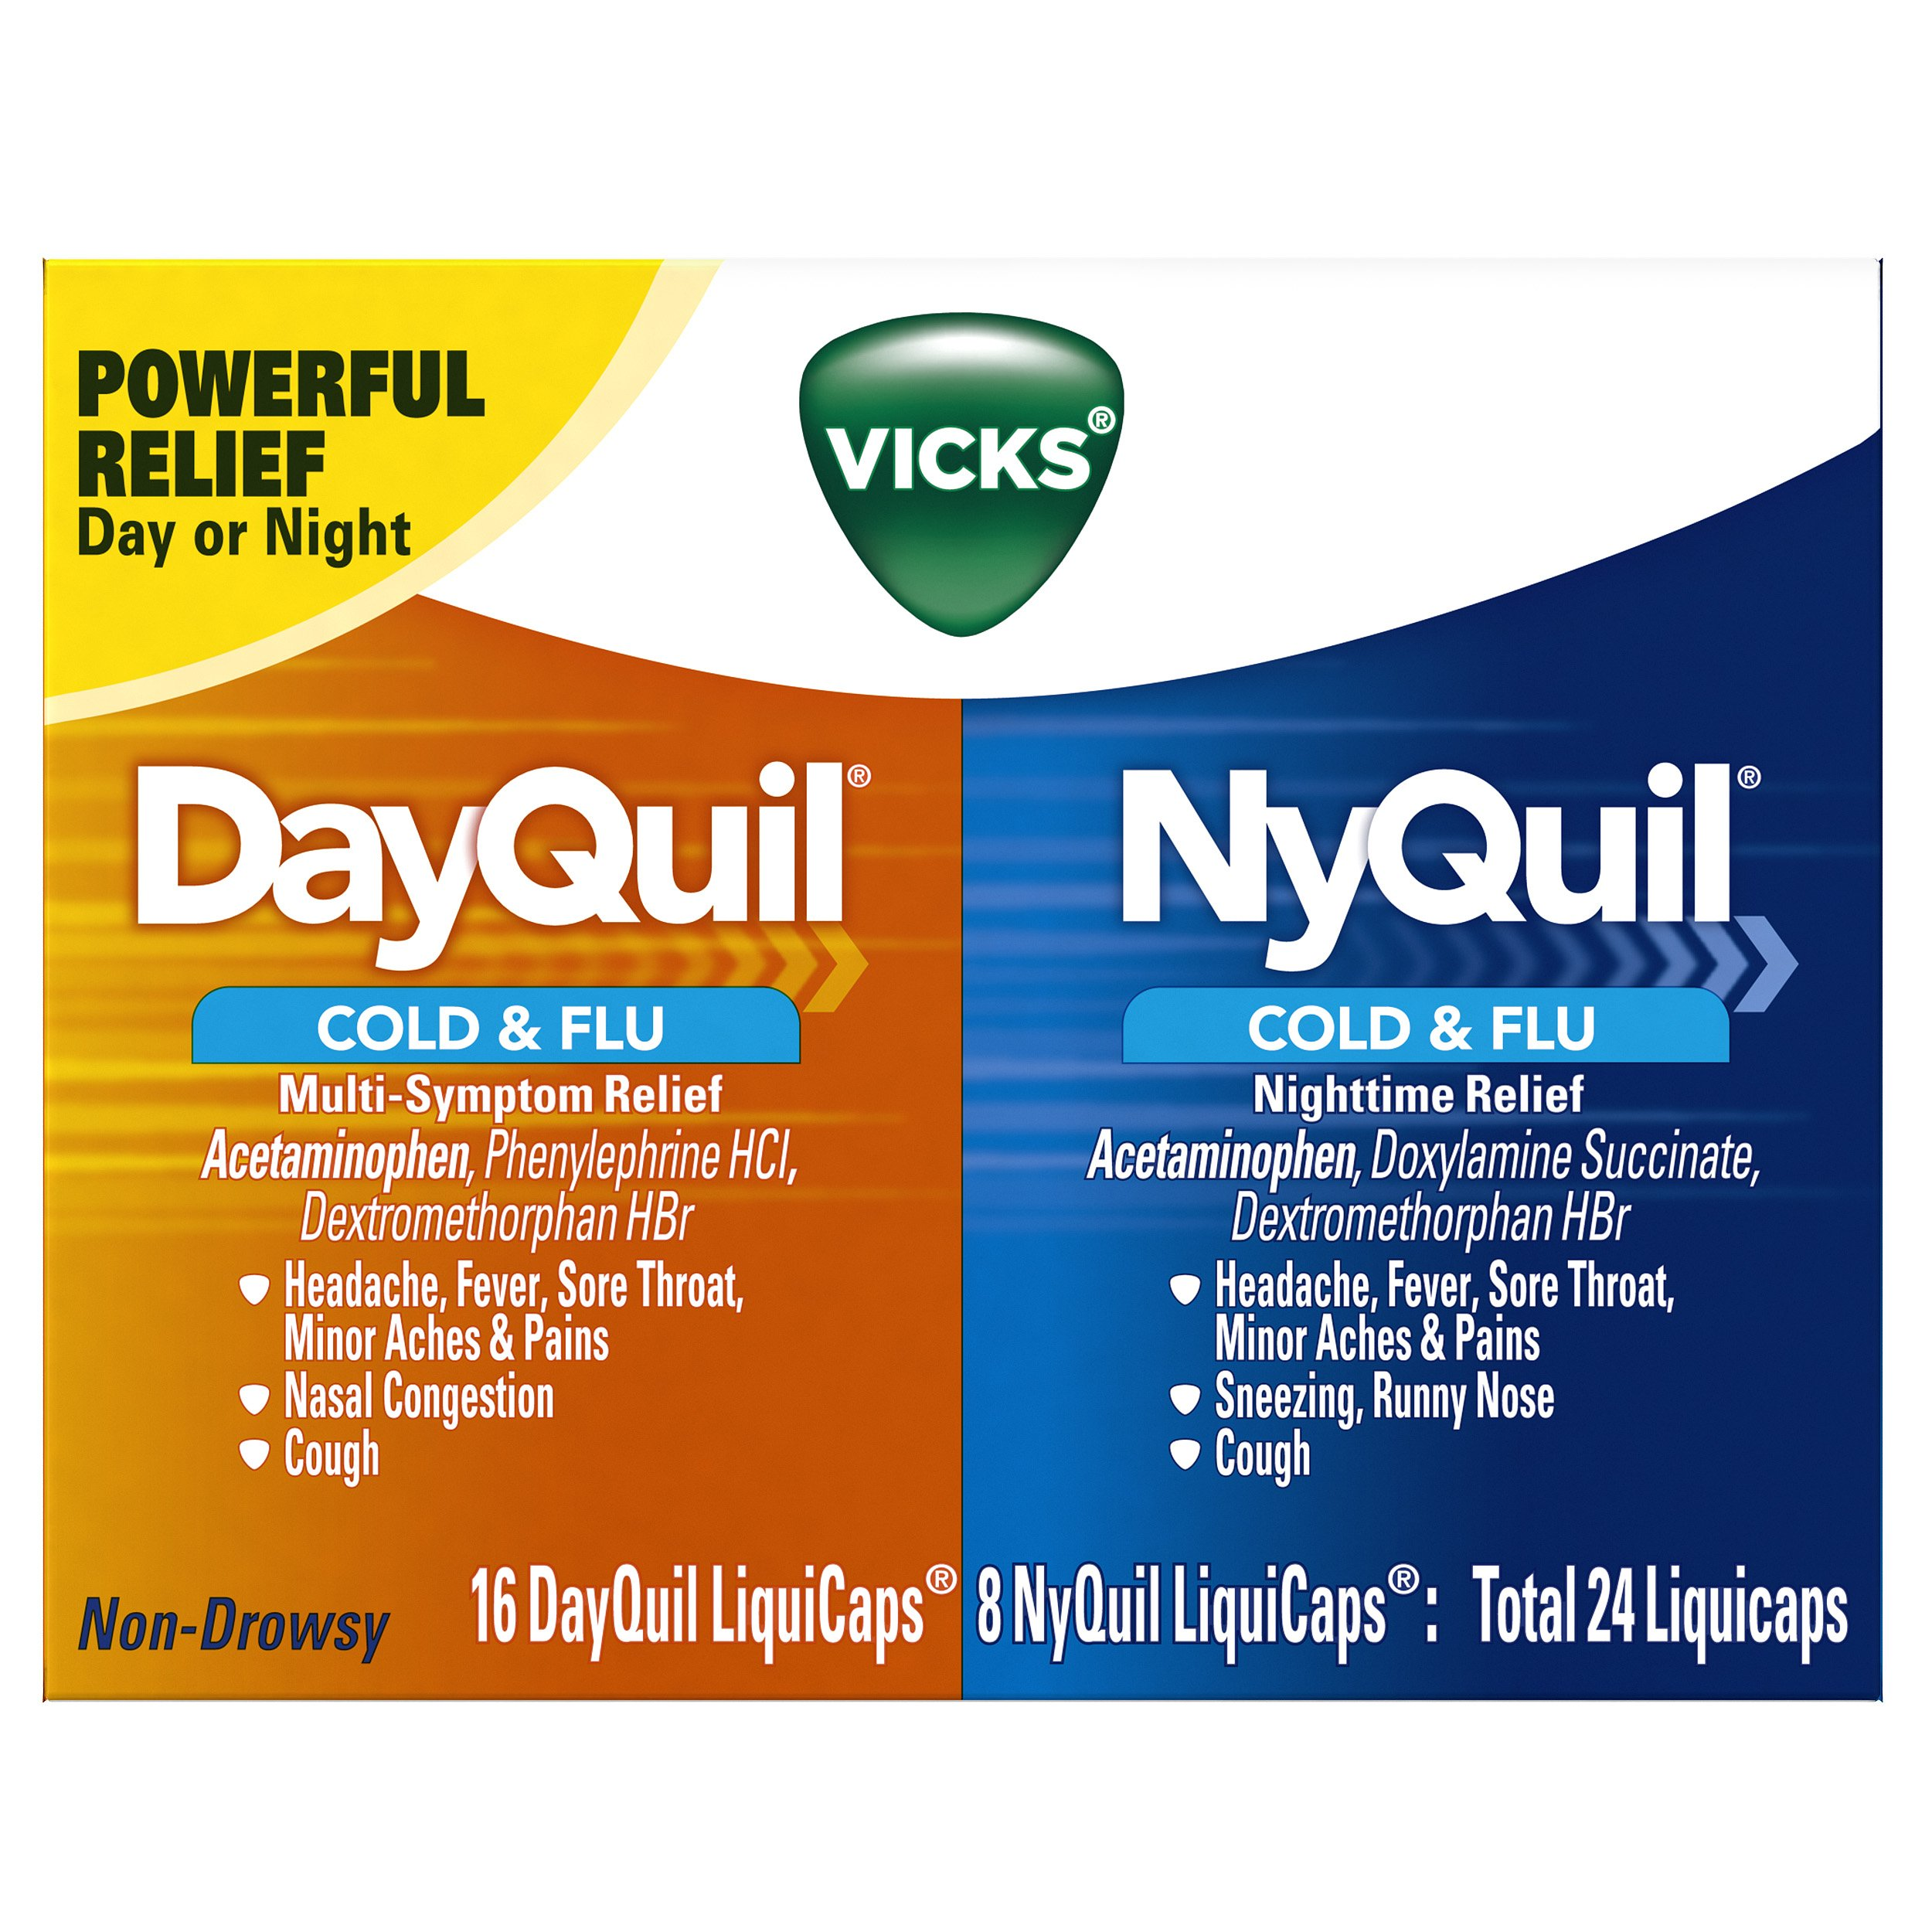 Vicks NyQuil Cold & Flu Nighttime Medicine and DayQuil Cold & Flu Medicine Convenience Pack 24 Count (Packaging May Vary) by Vicks